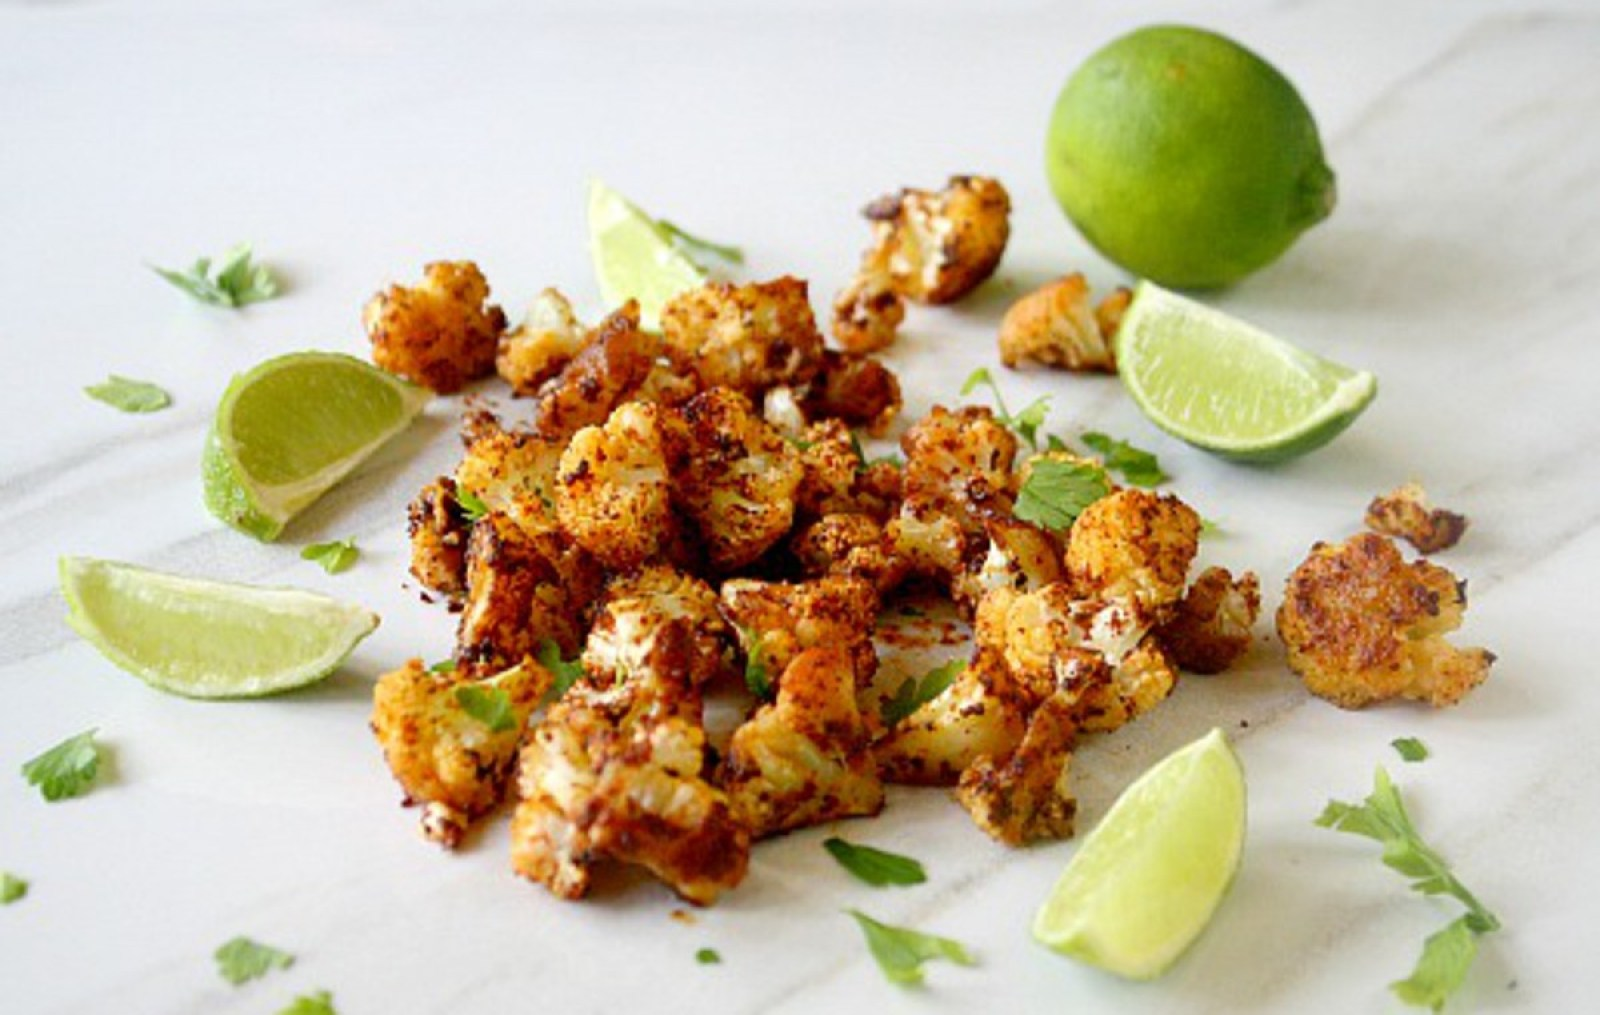 Simple Roasted Cauliflower With Chipotle and Lime